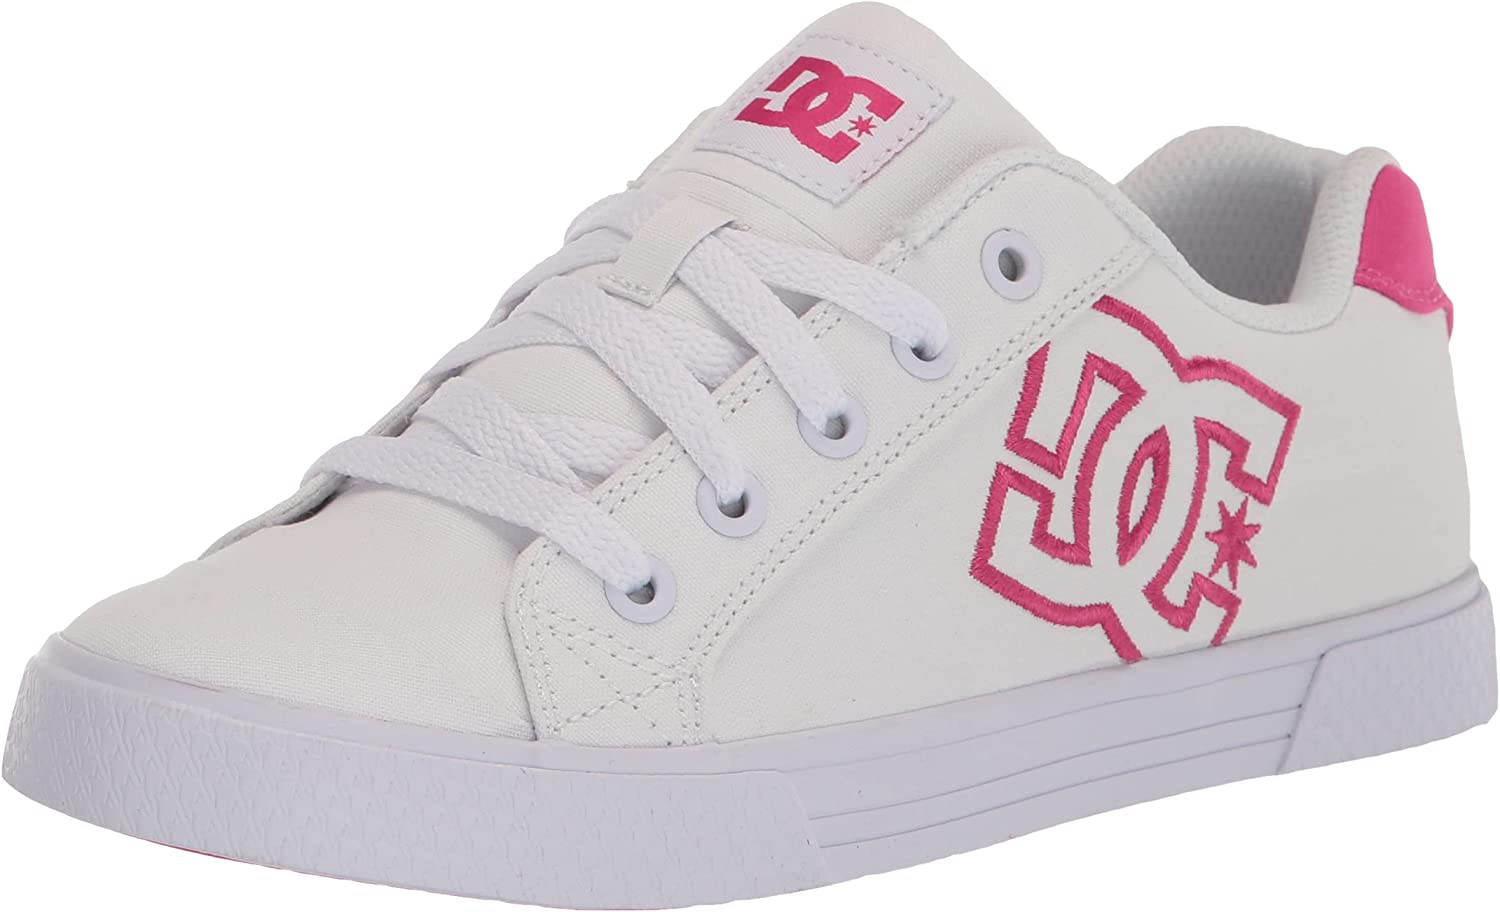 DC Women's Chelsea Low Max 78% OFF Casual Top Surprise price Shoe Skate